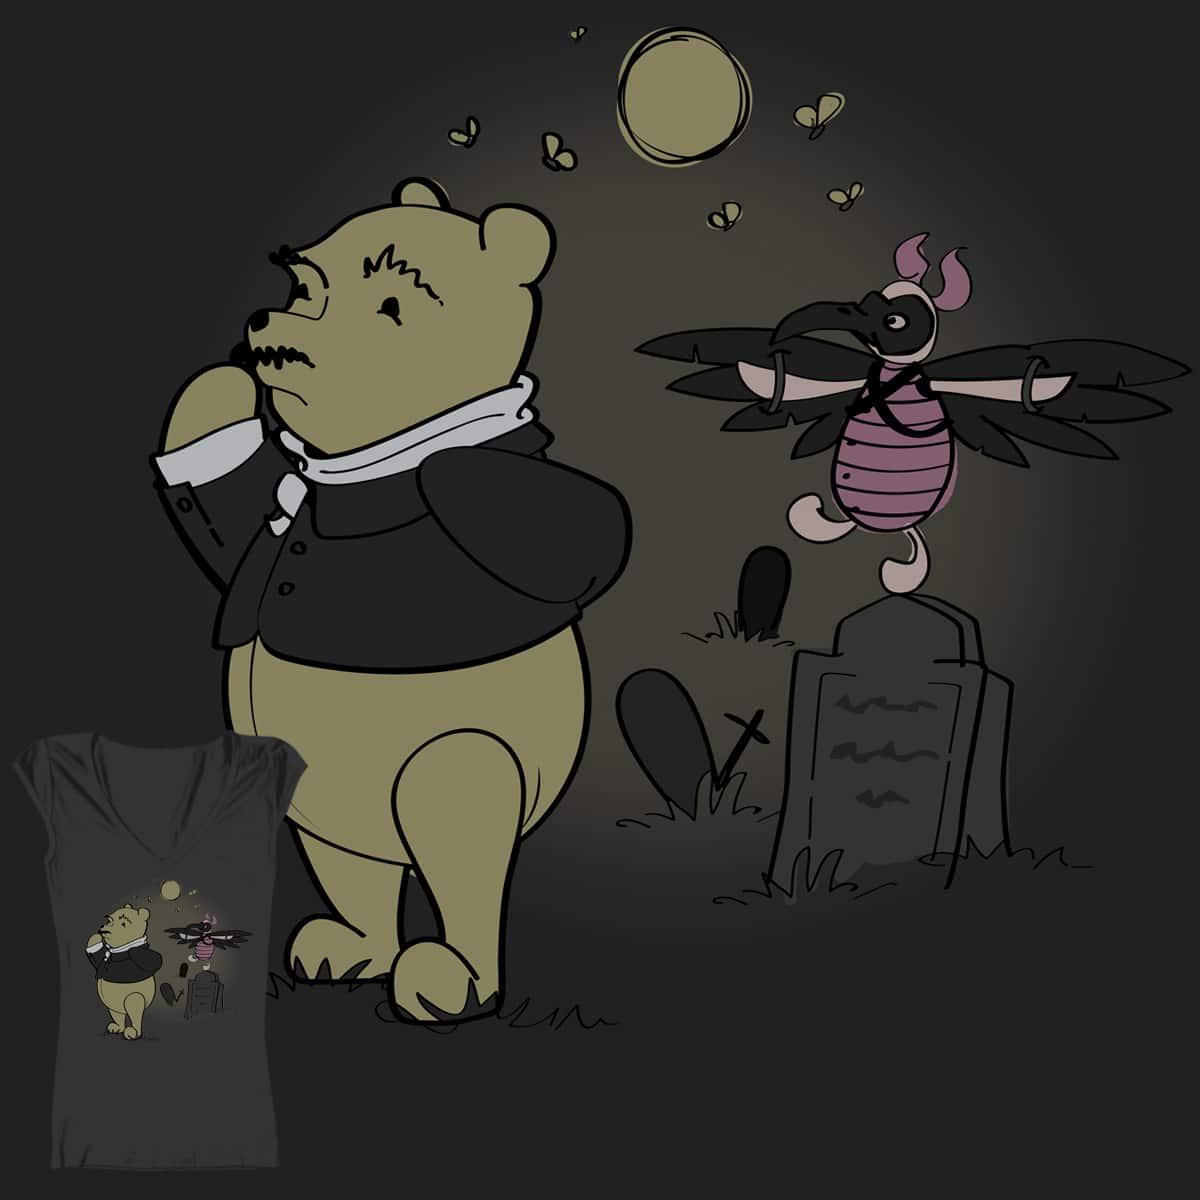 Winnie-the-Poe by Jess-Design-and-Illustration on Threadless